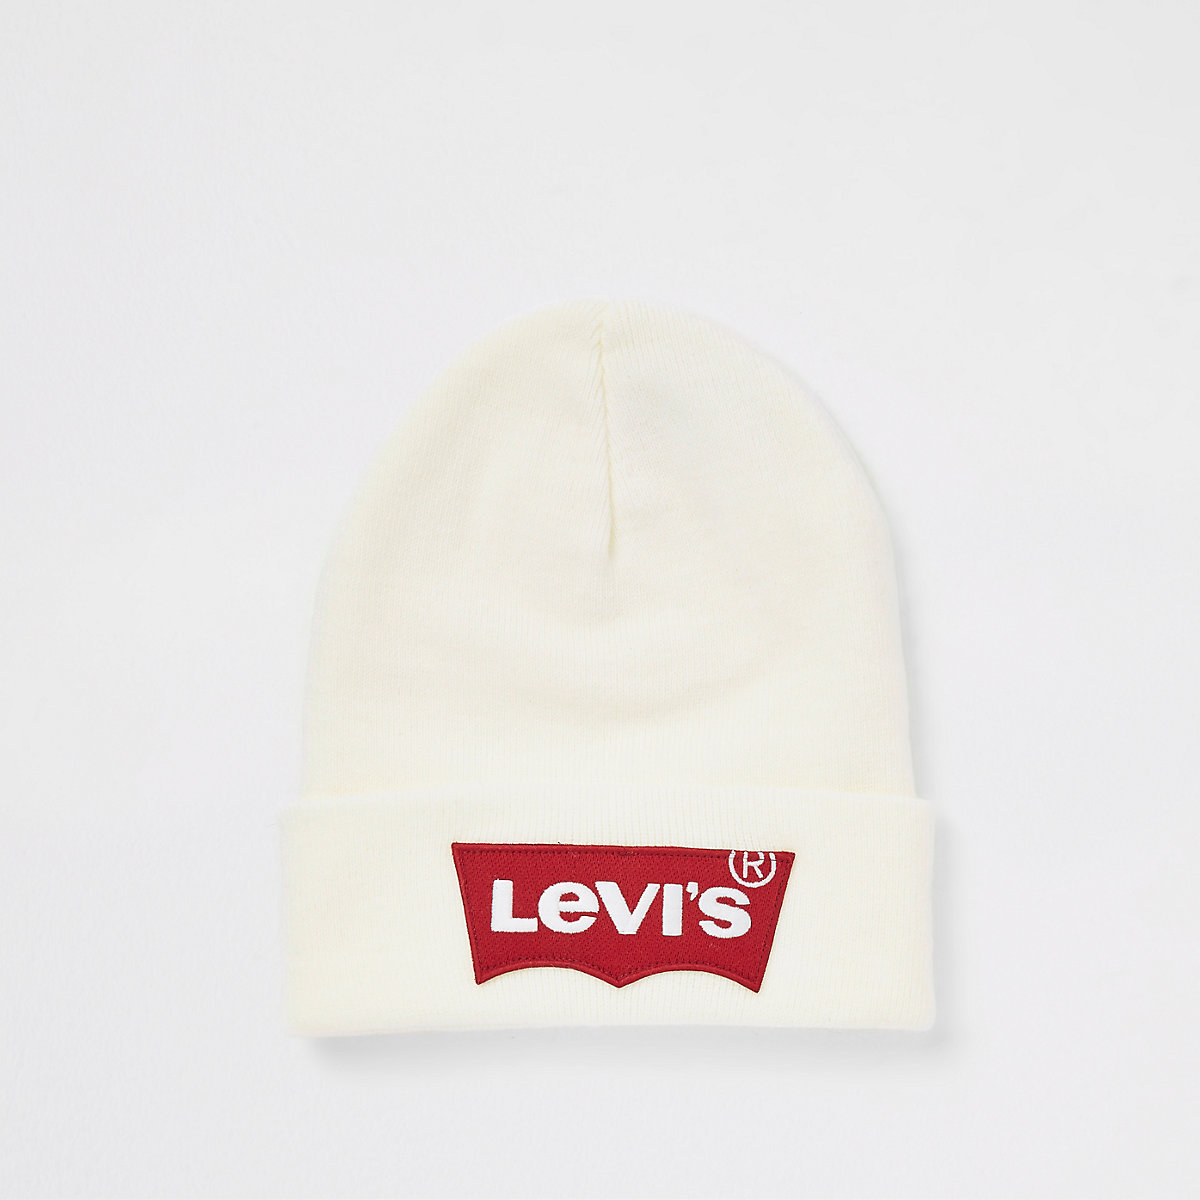 Levi's white ribbed knit beanie hat